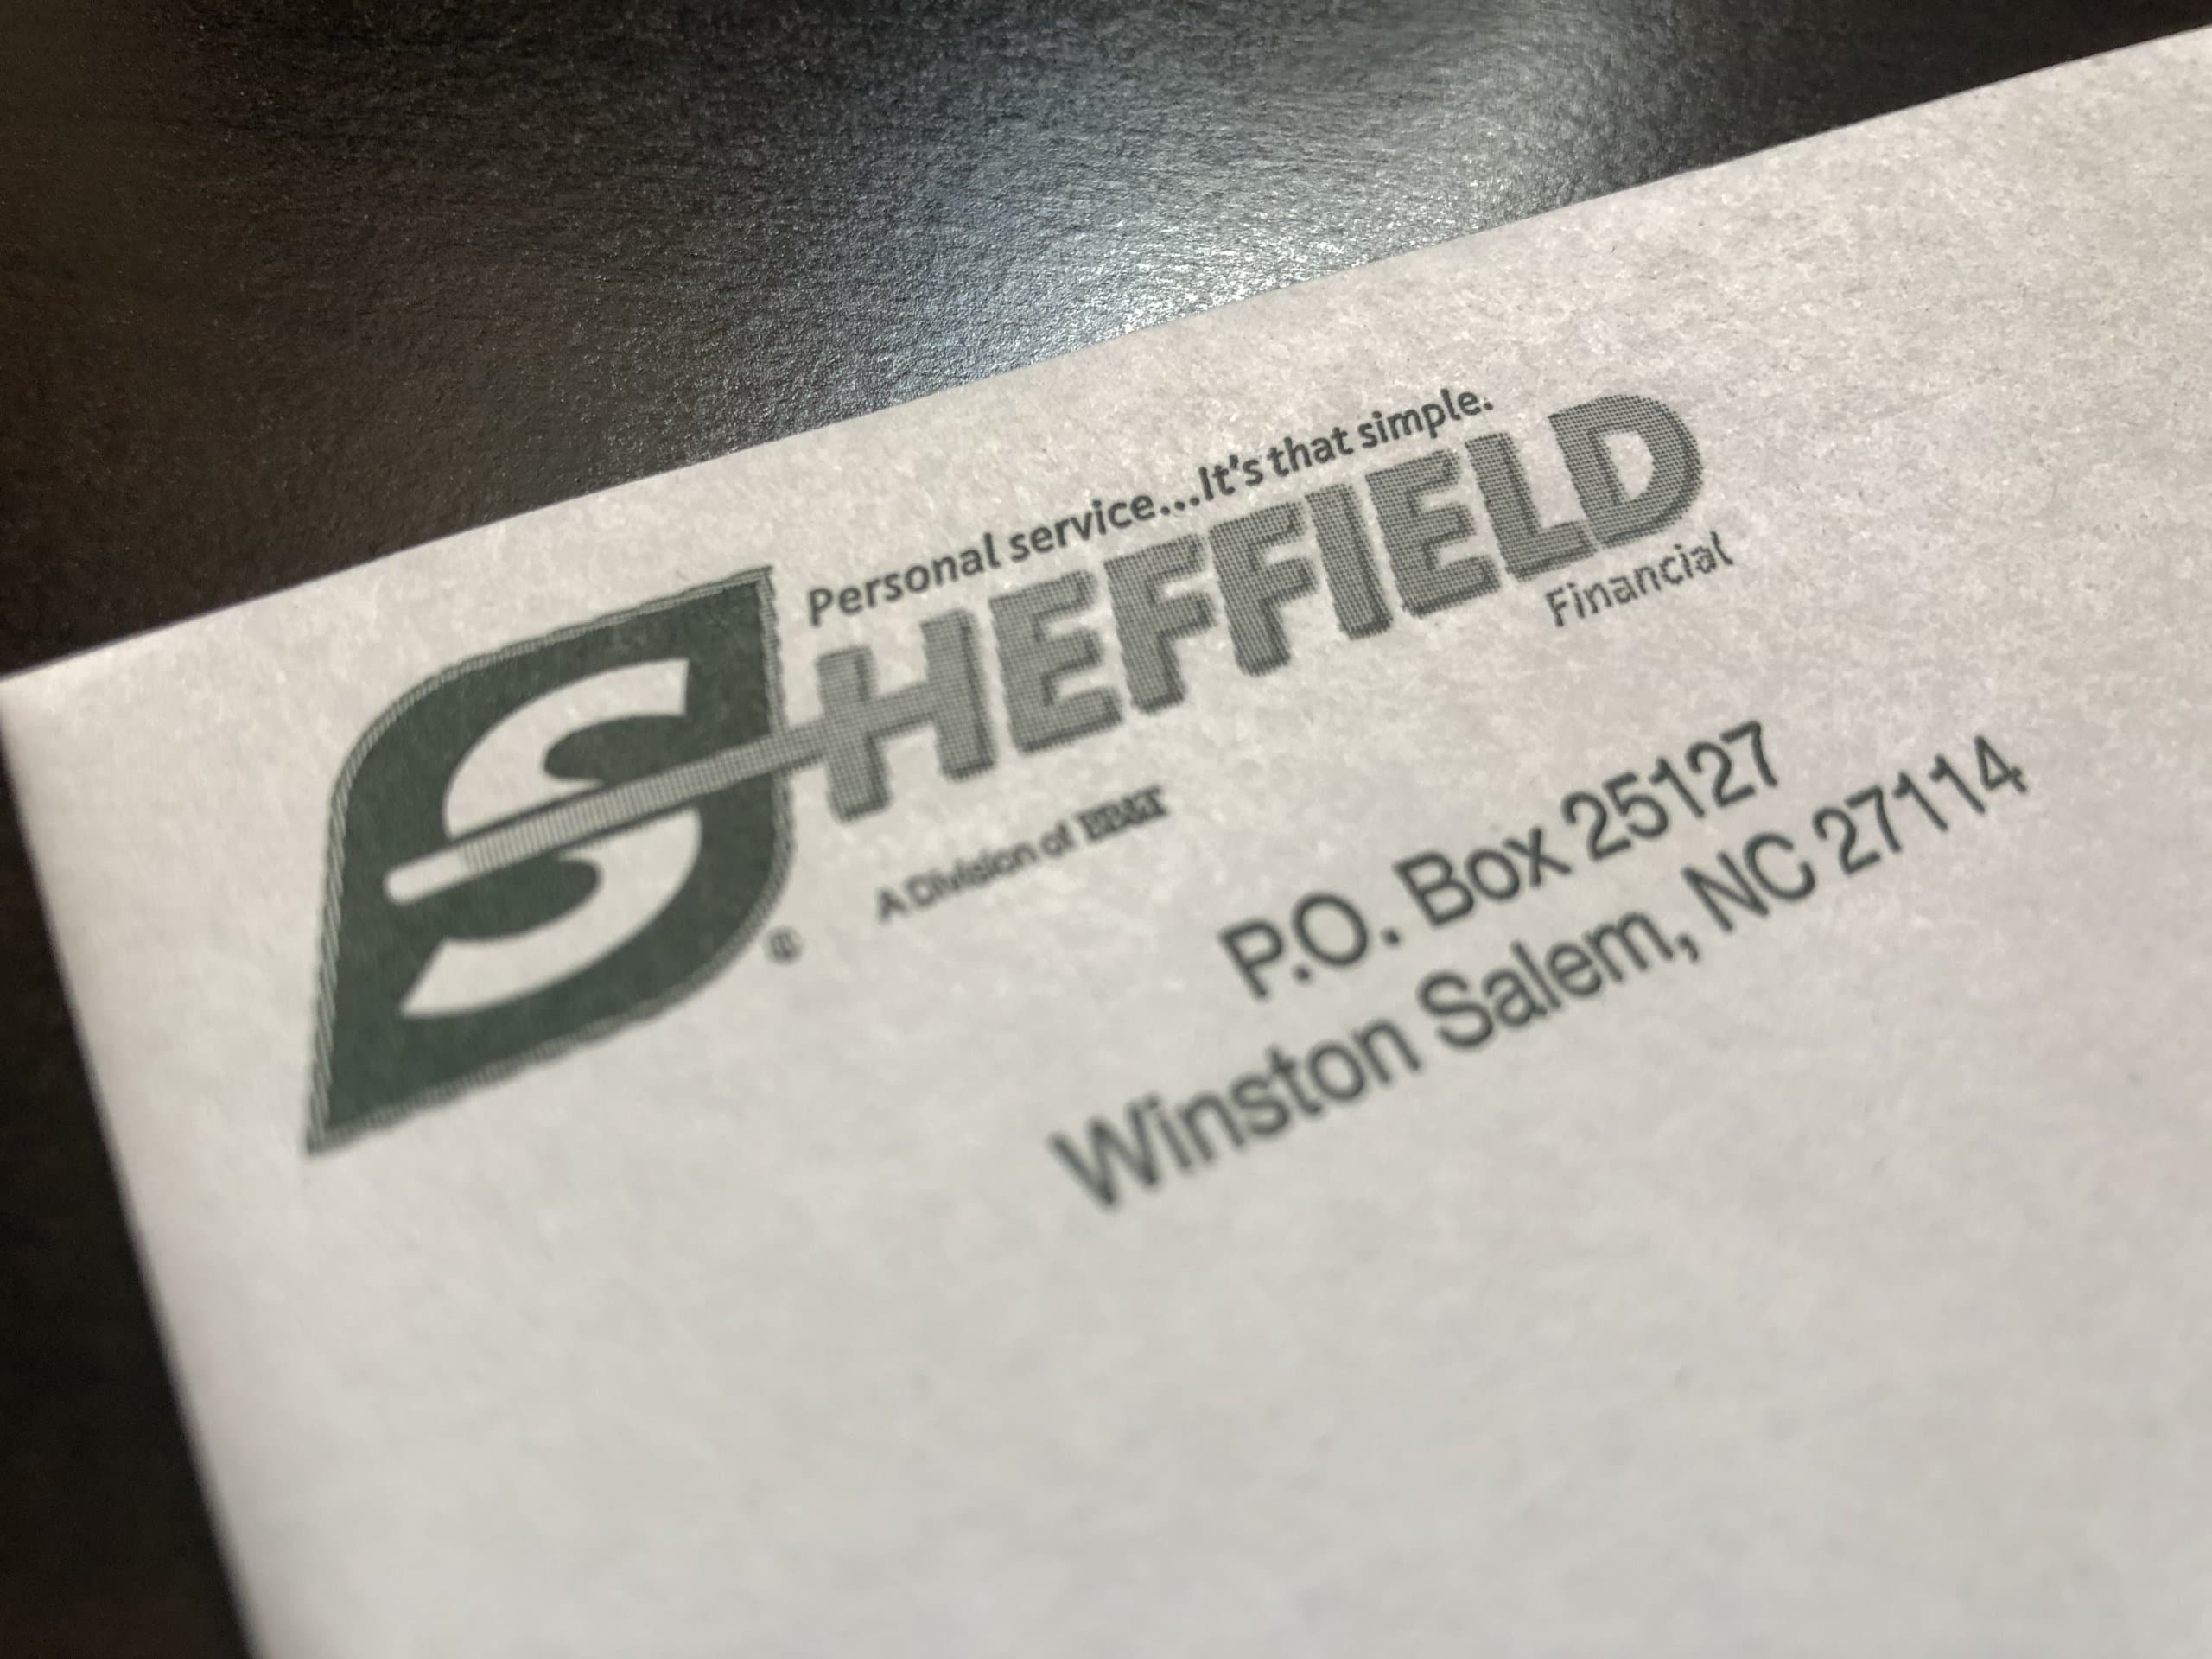 Mail from Sheffield Financial resting on a desk